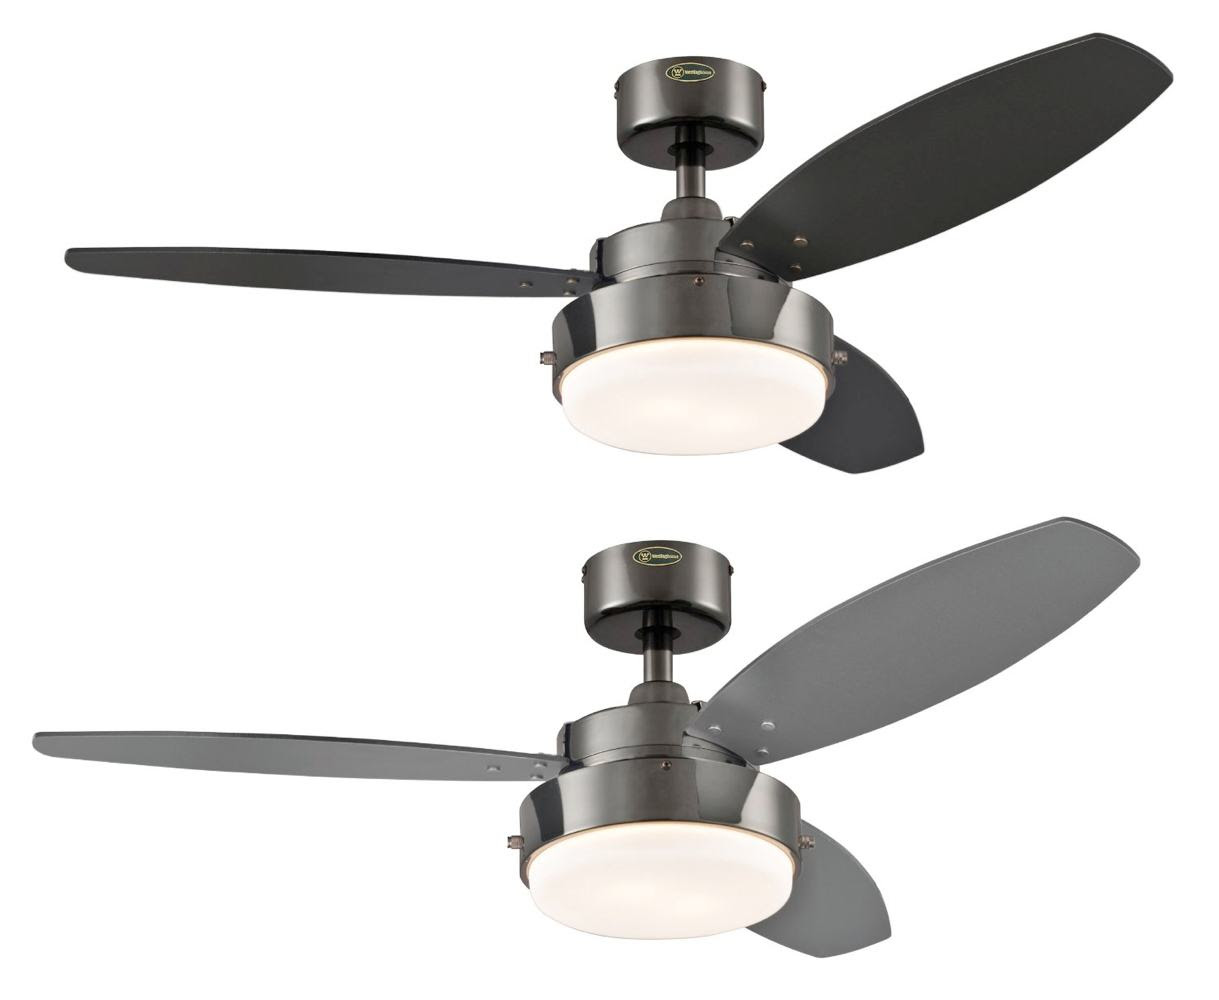 Westinghouse 2 Light 42quot Reversible 3 Blade Indoor Ceiling Fan Gun Light Kit Included